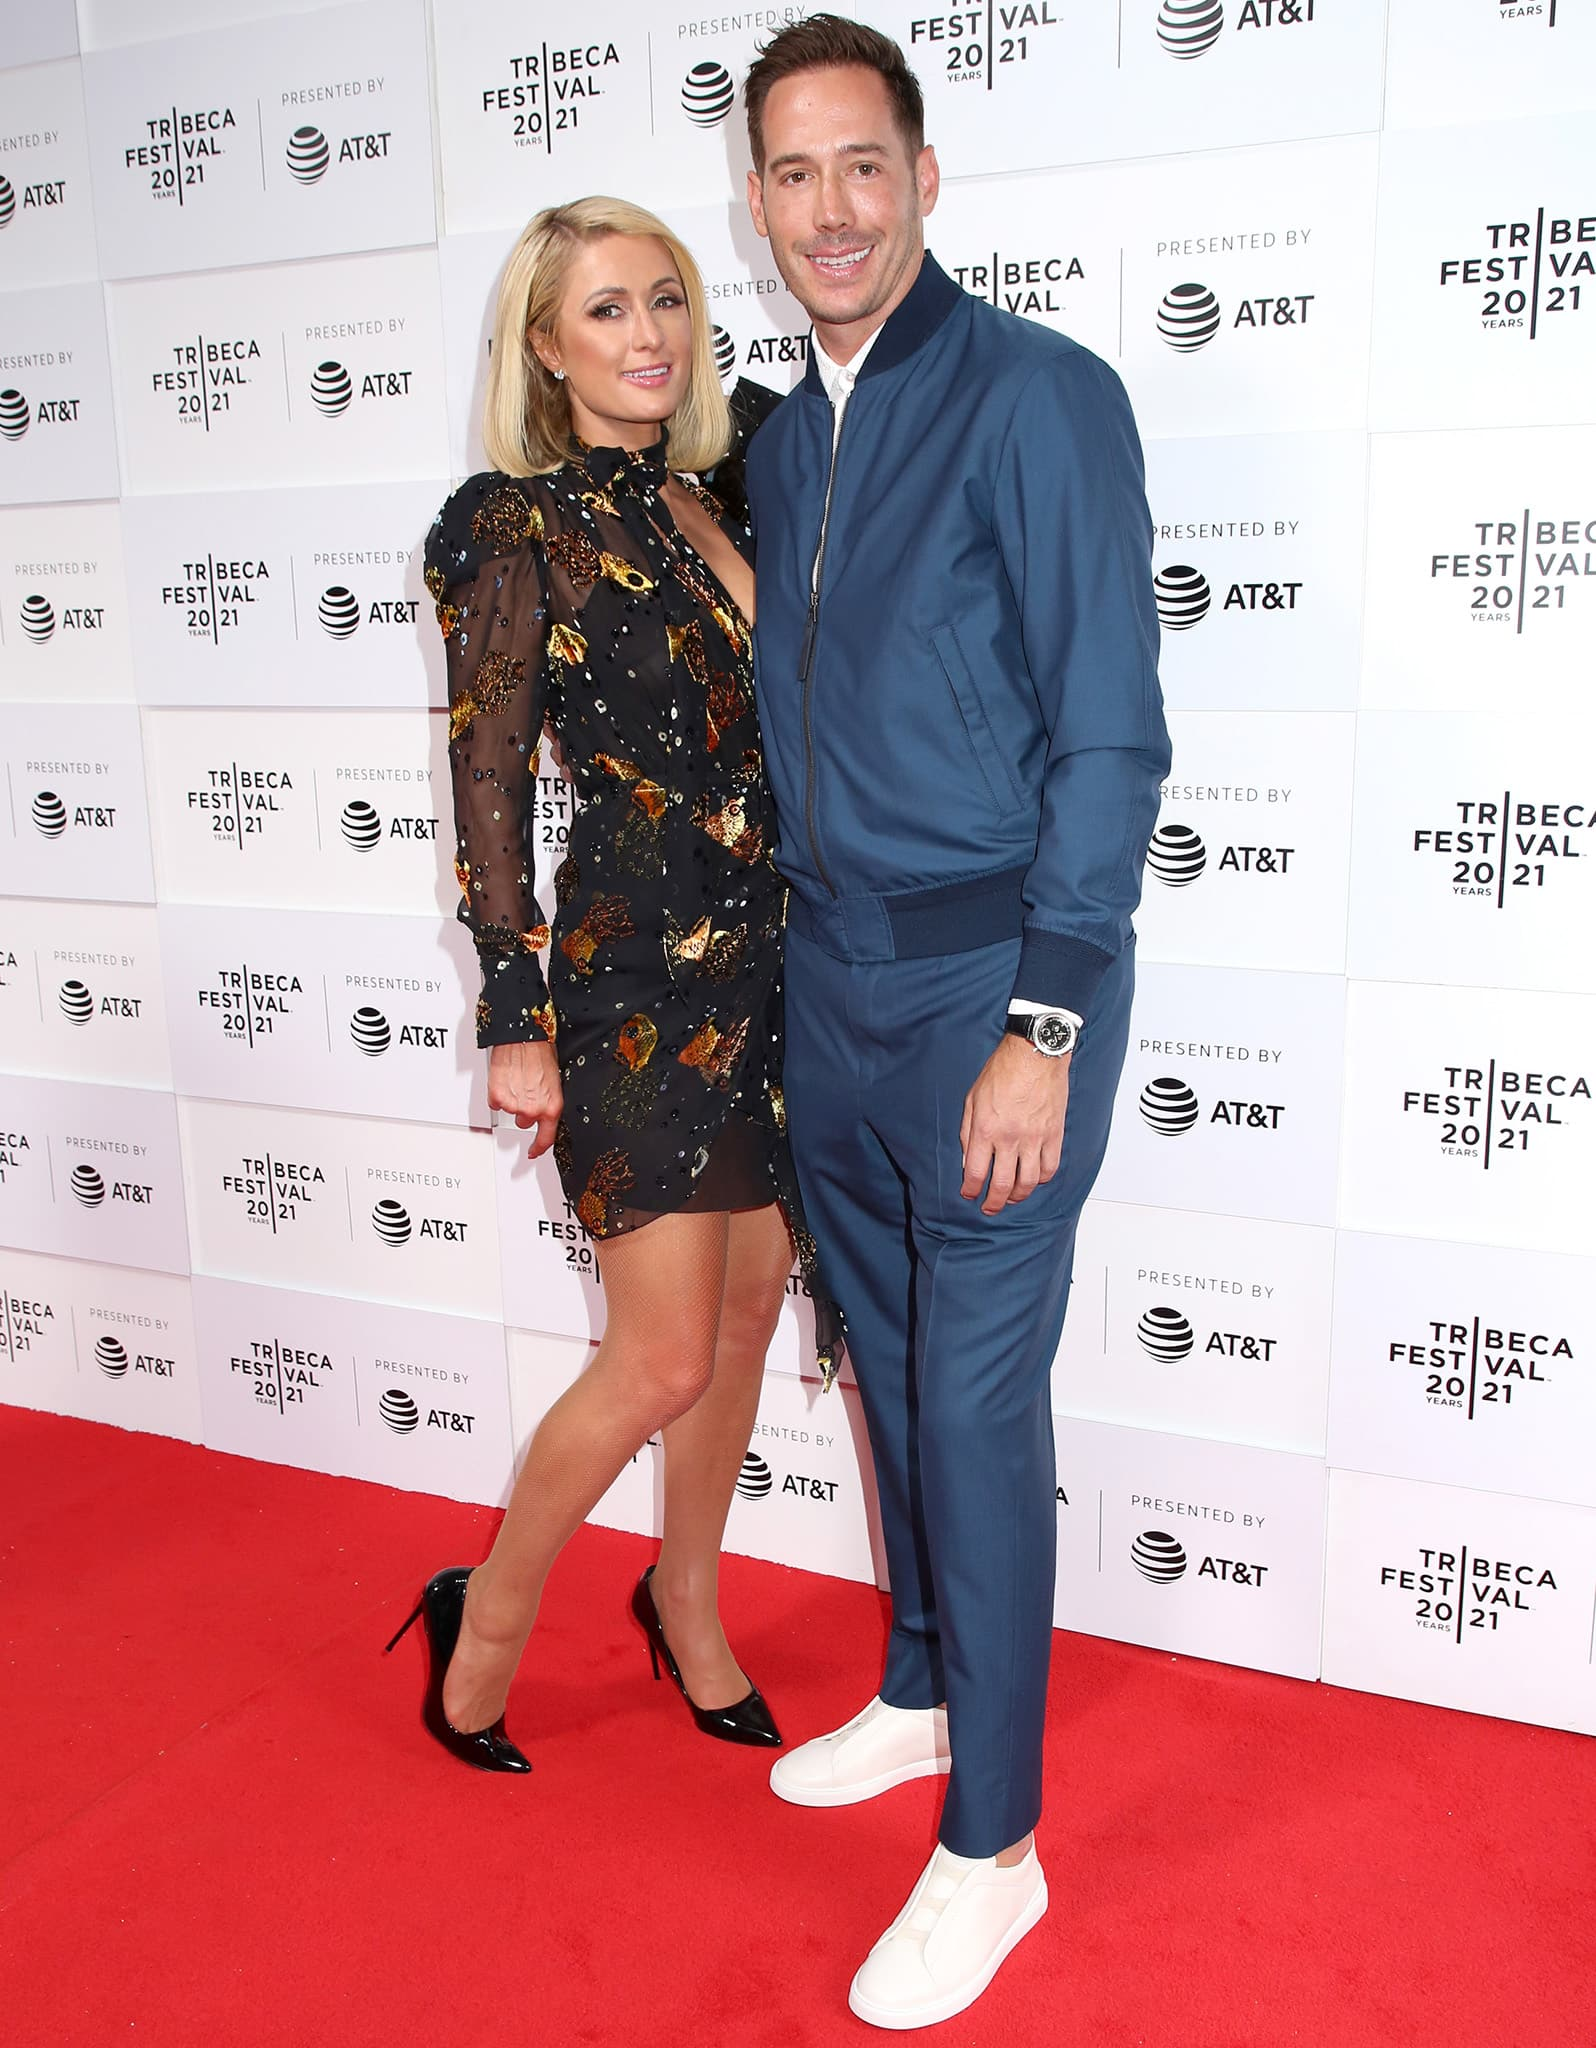 Paris Hilton and fiancé Carter Reum at the screening of This is Paris documentary during the 2021 Tribeca Film Festival closing night on June 20, 2021